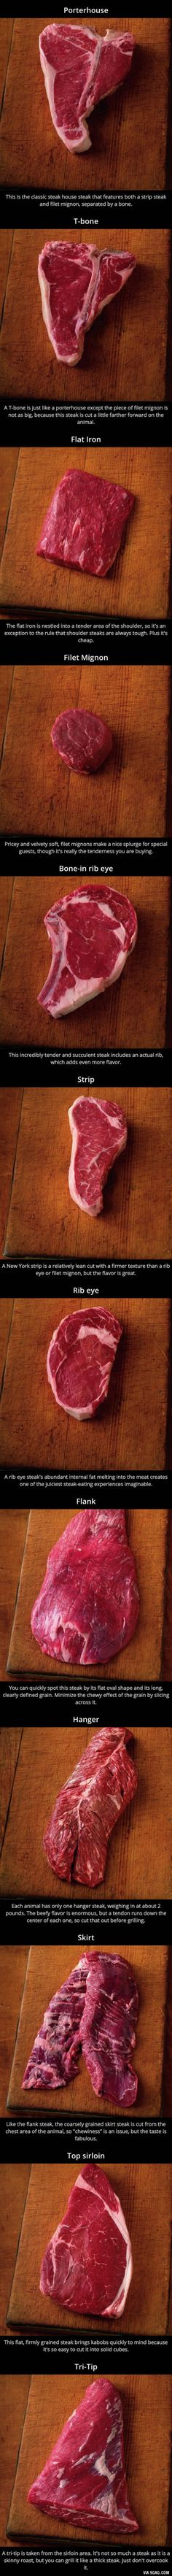 Different Types Of Steak More